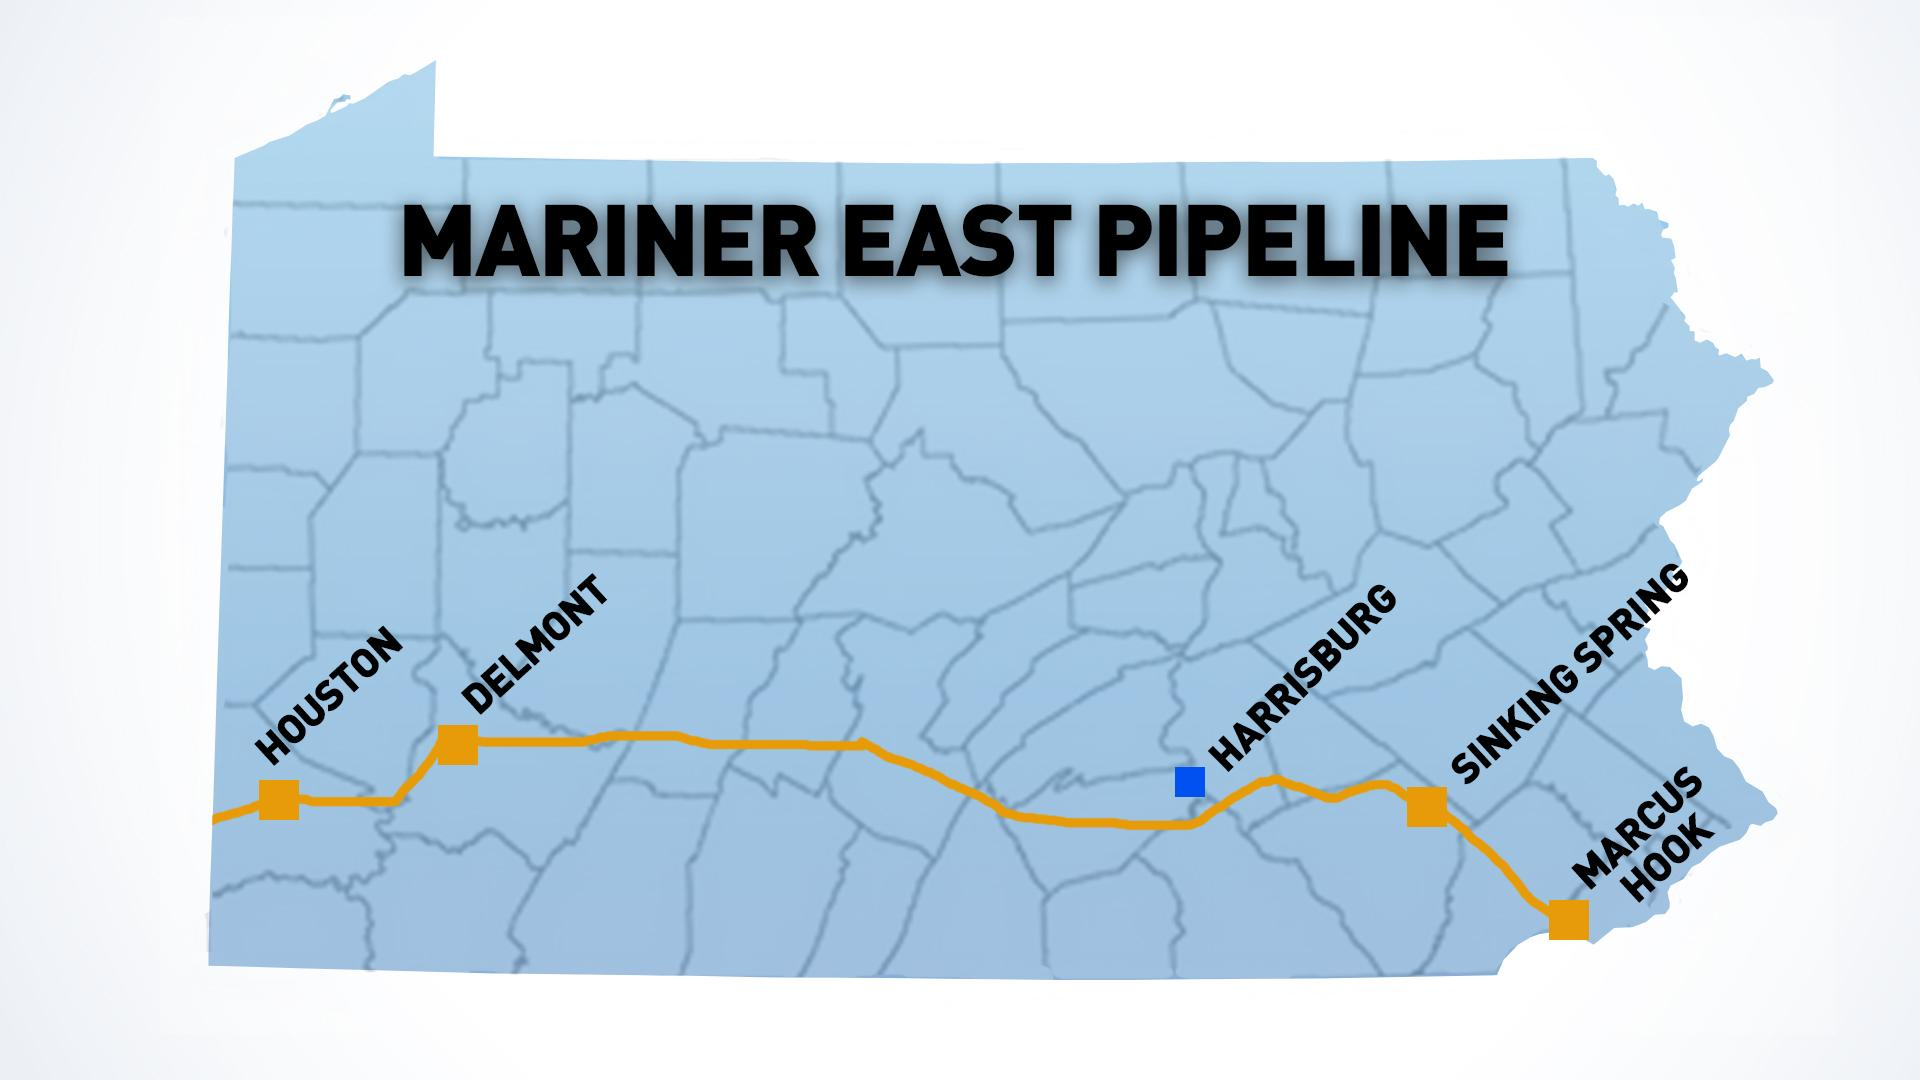 MARINER EAST PIPELINE MAP.jpg